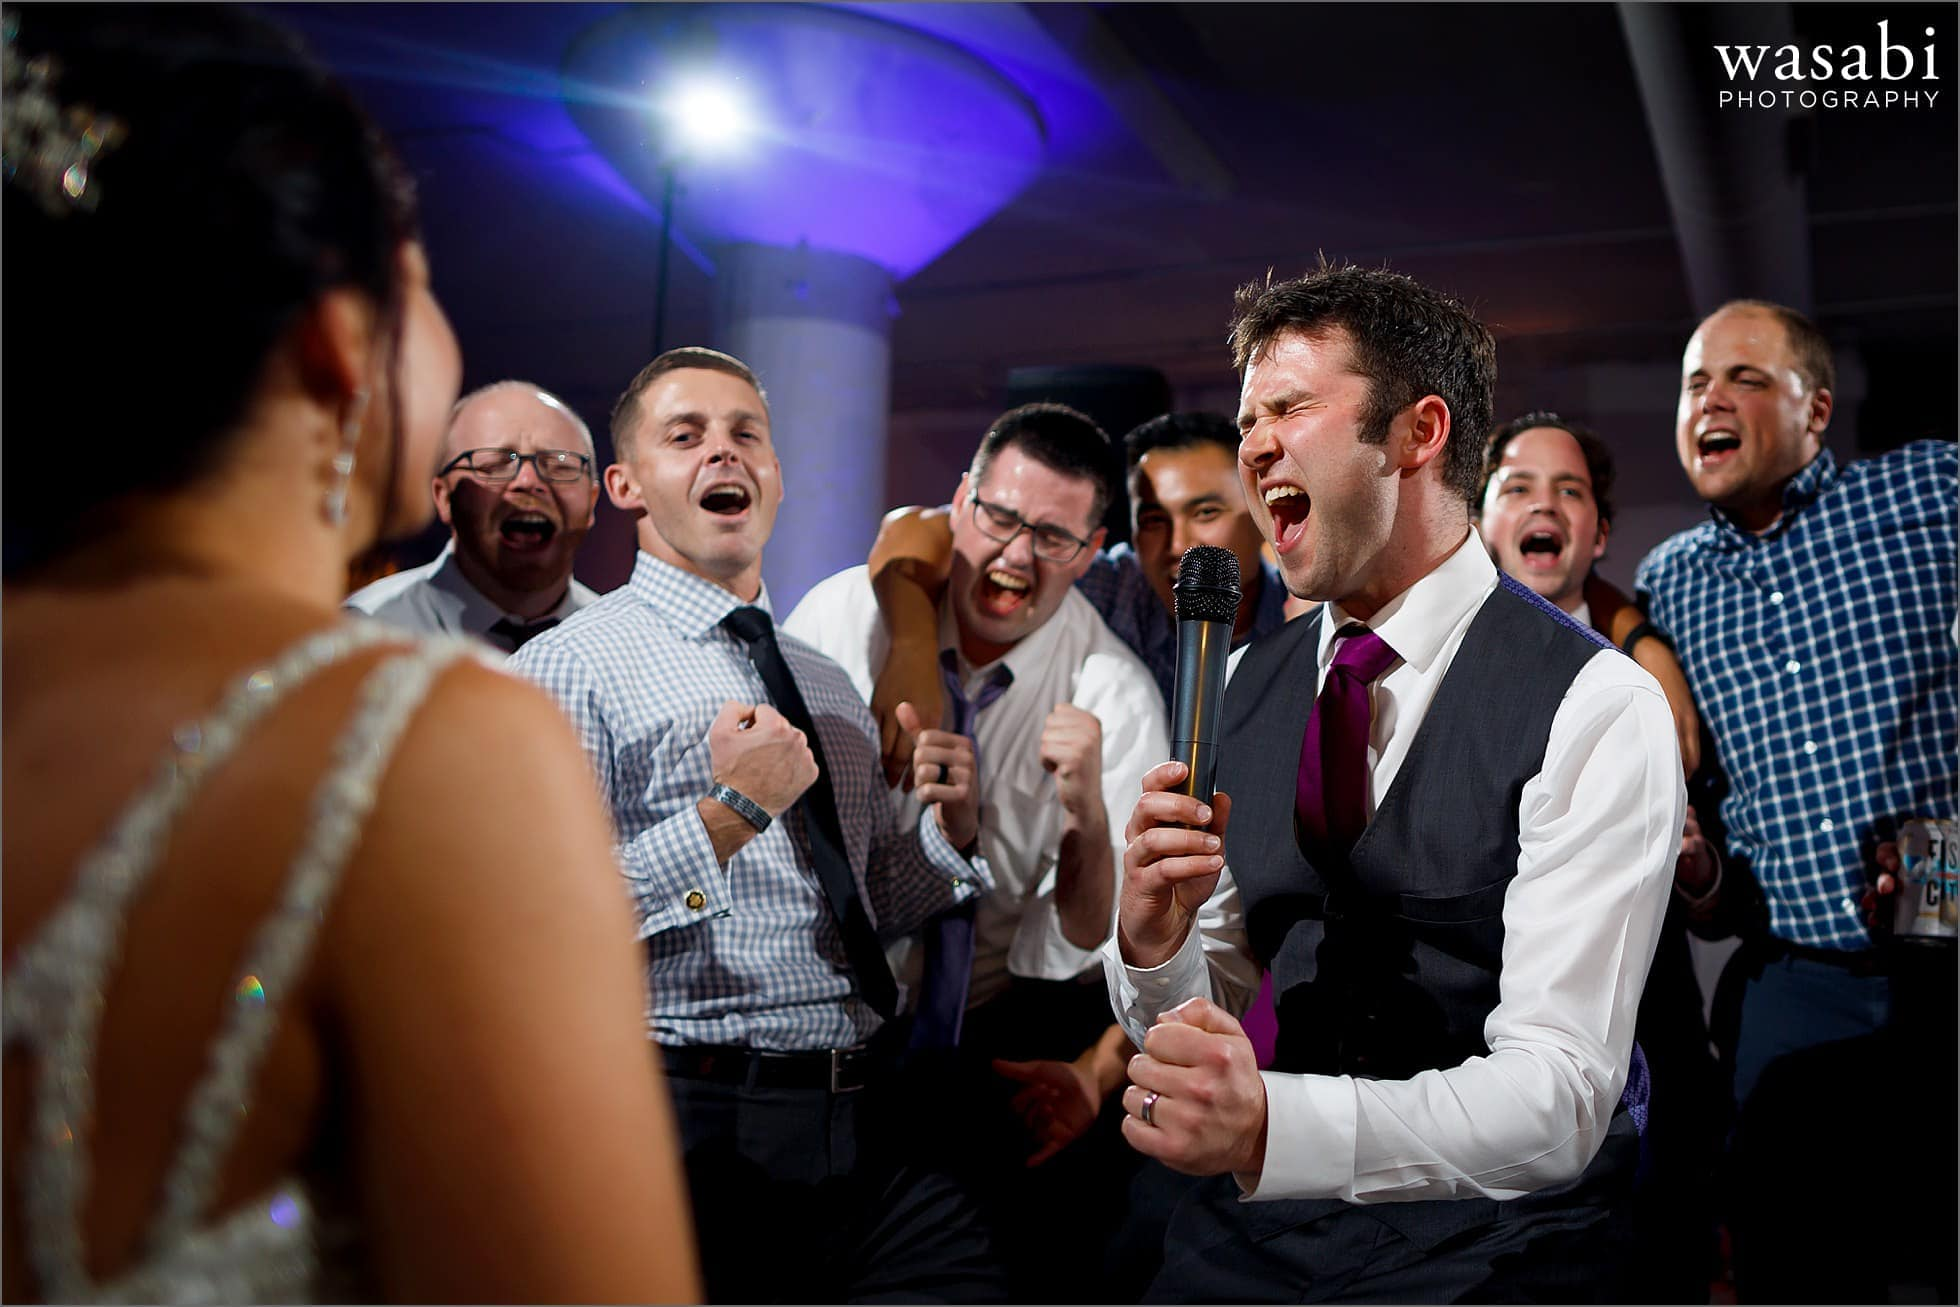 groom sings to his bride during wedding reception at Room 1520 in Chicago